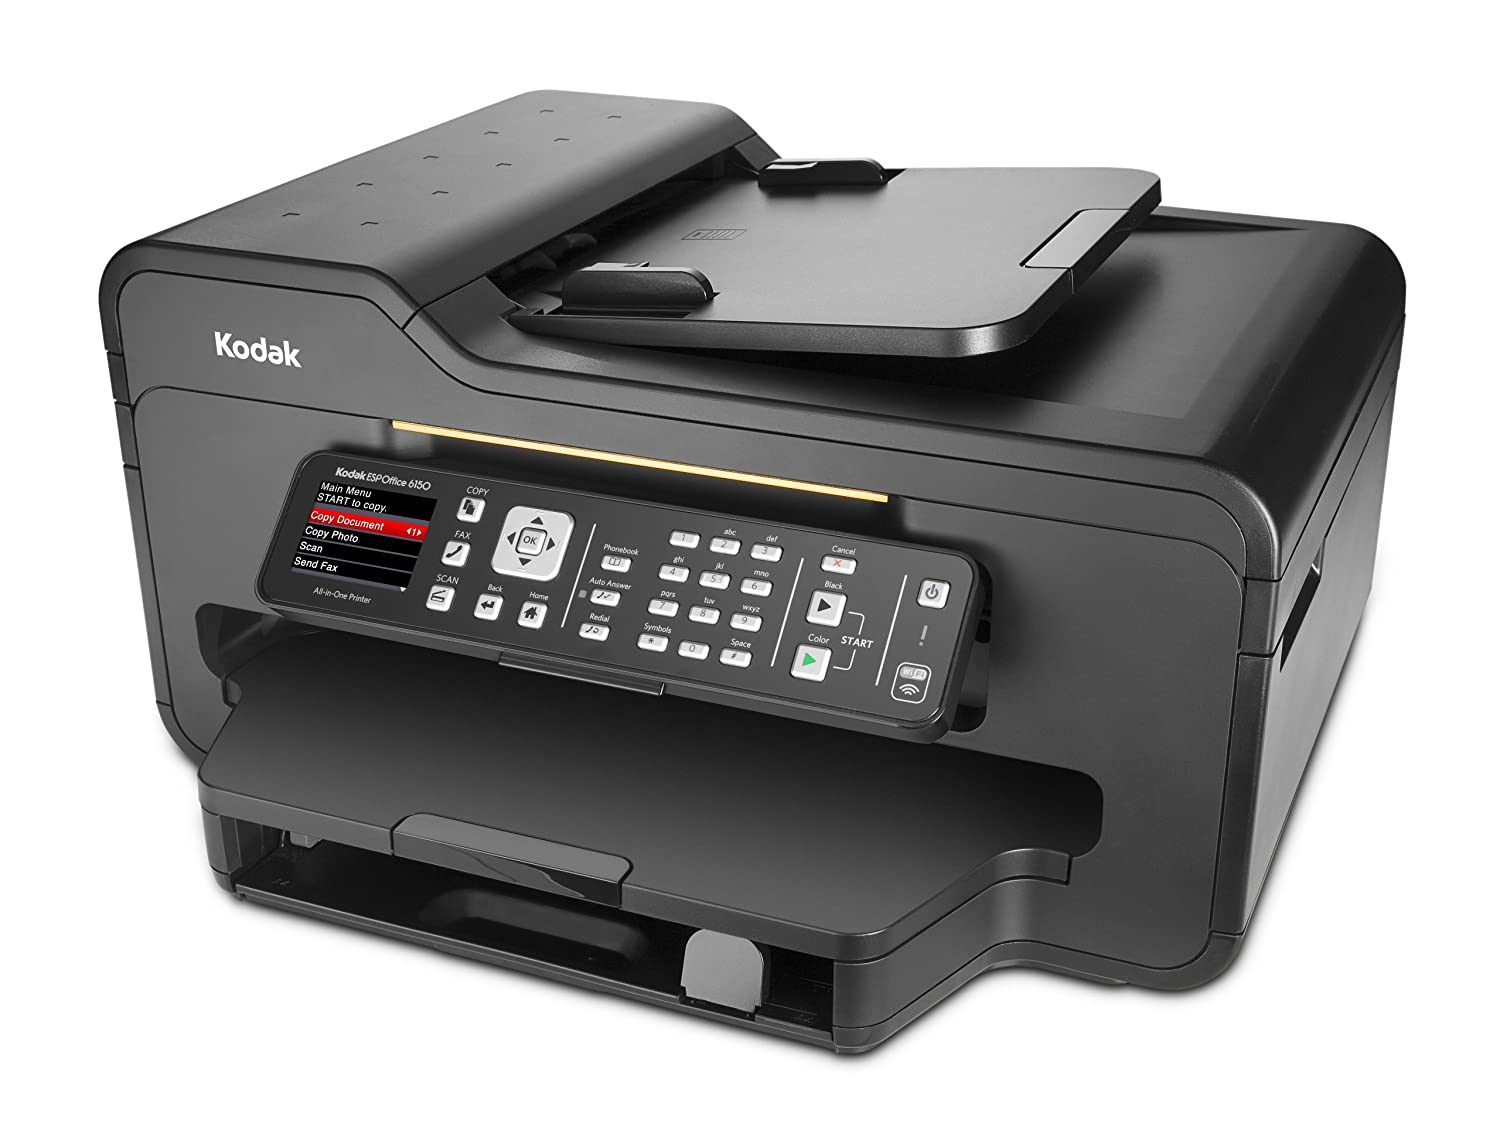 KODAK ESP OFFICE 6150 PRINTER WINDOWS VISTA DRIVER